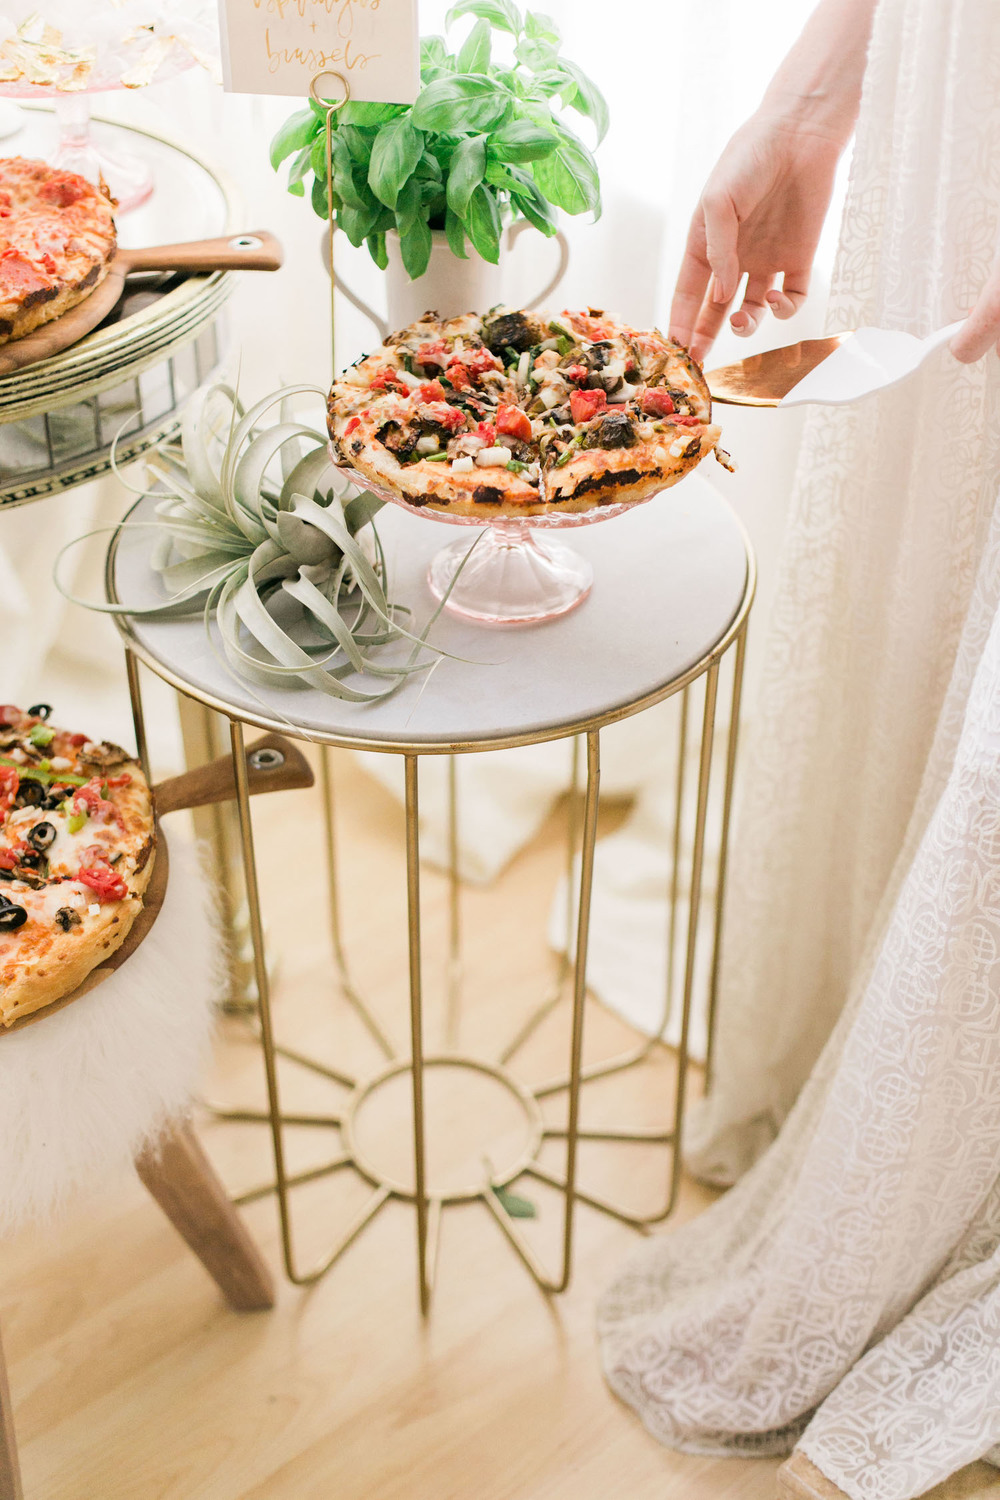 Cake servers double as a way to fancy up your pizza bar | A Fabulous Fete